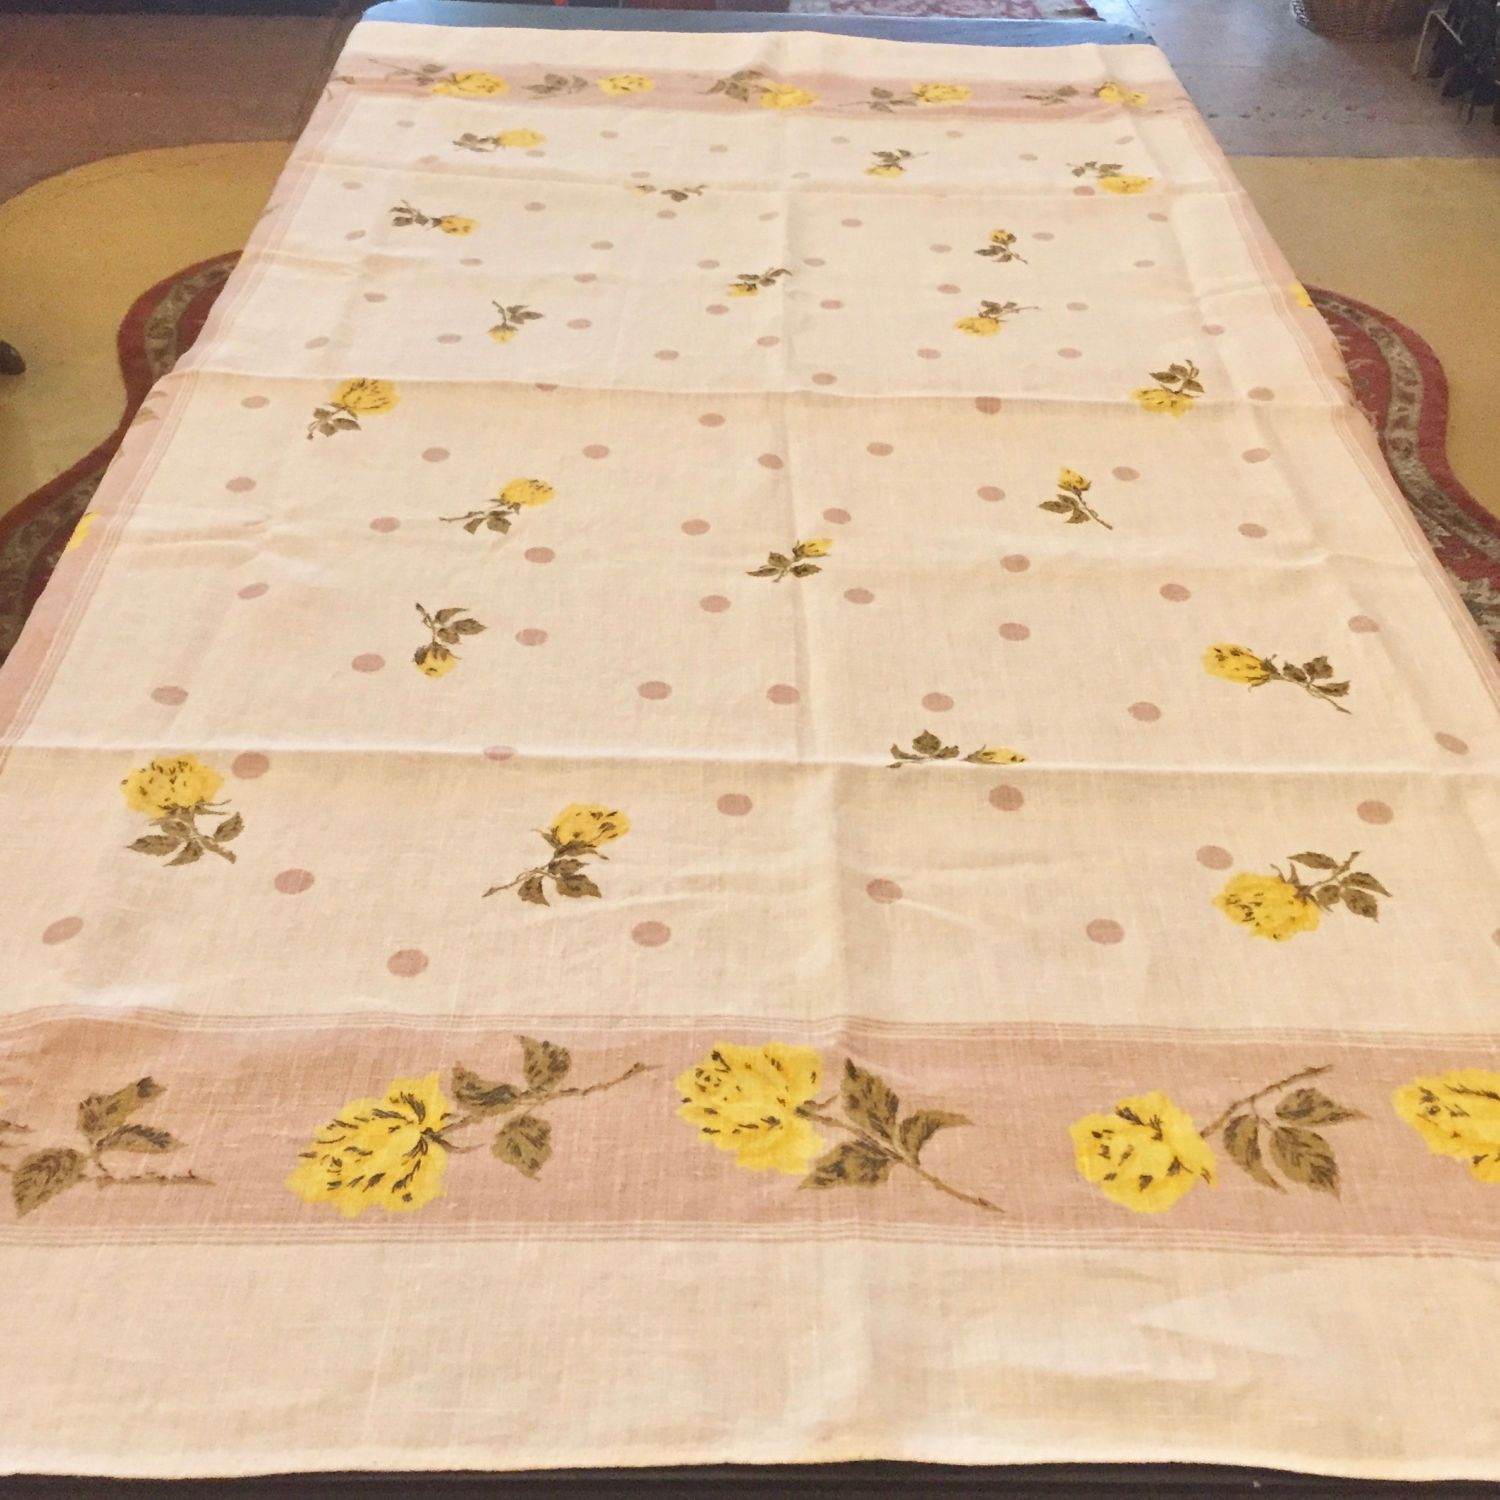 Vintage 1950s   1960s Linen Tablecloth, Yellow Roses U0026 Brown Polka Dots By  SweetLittleVillage On